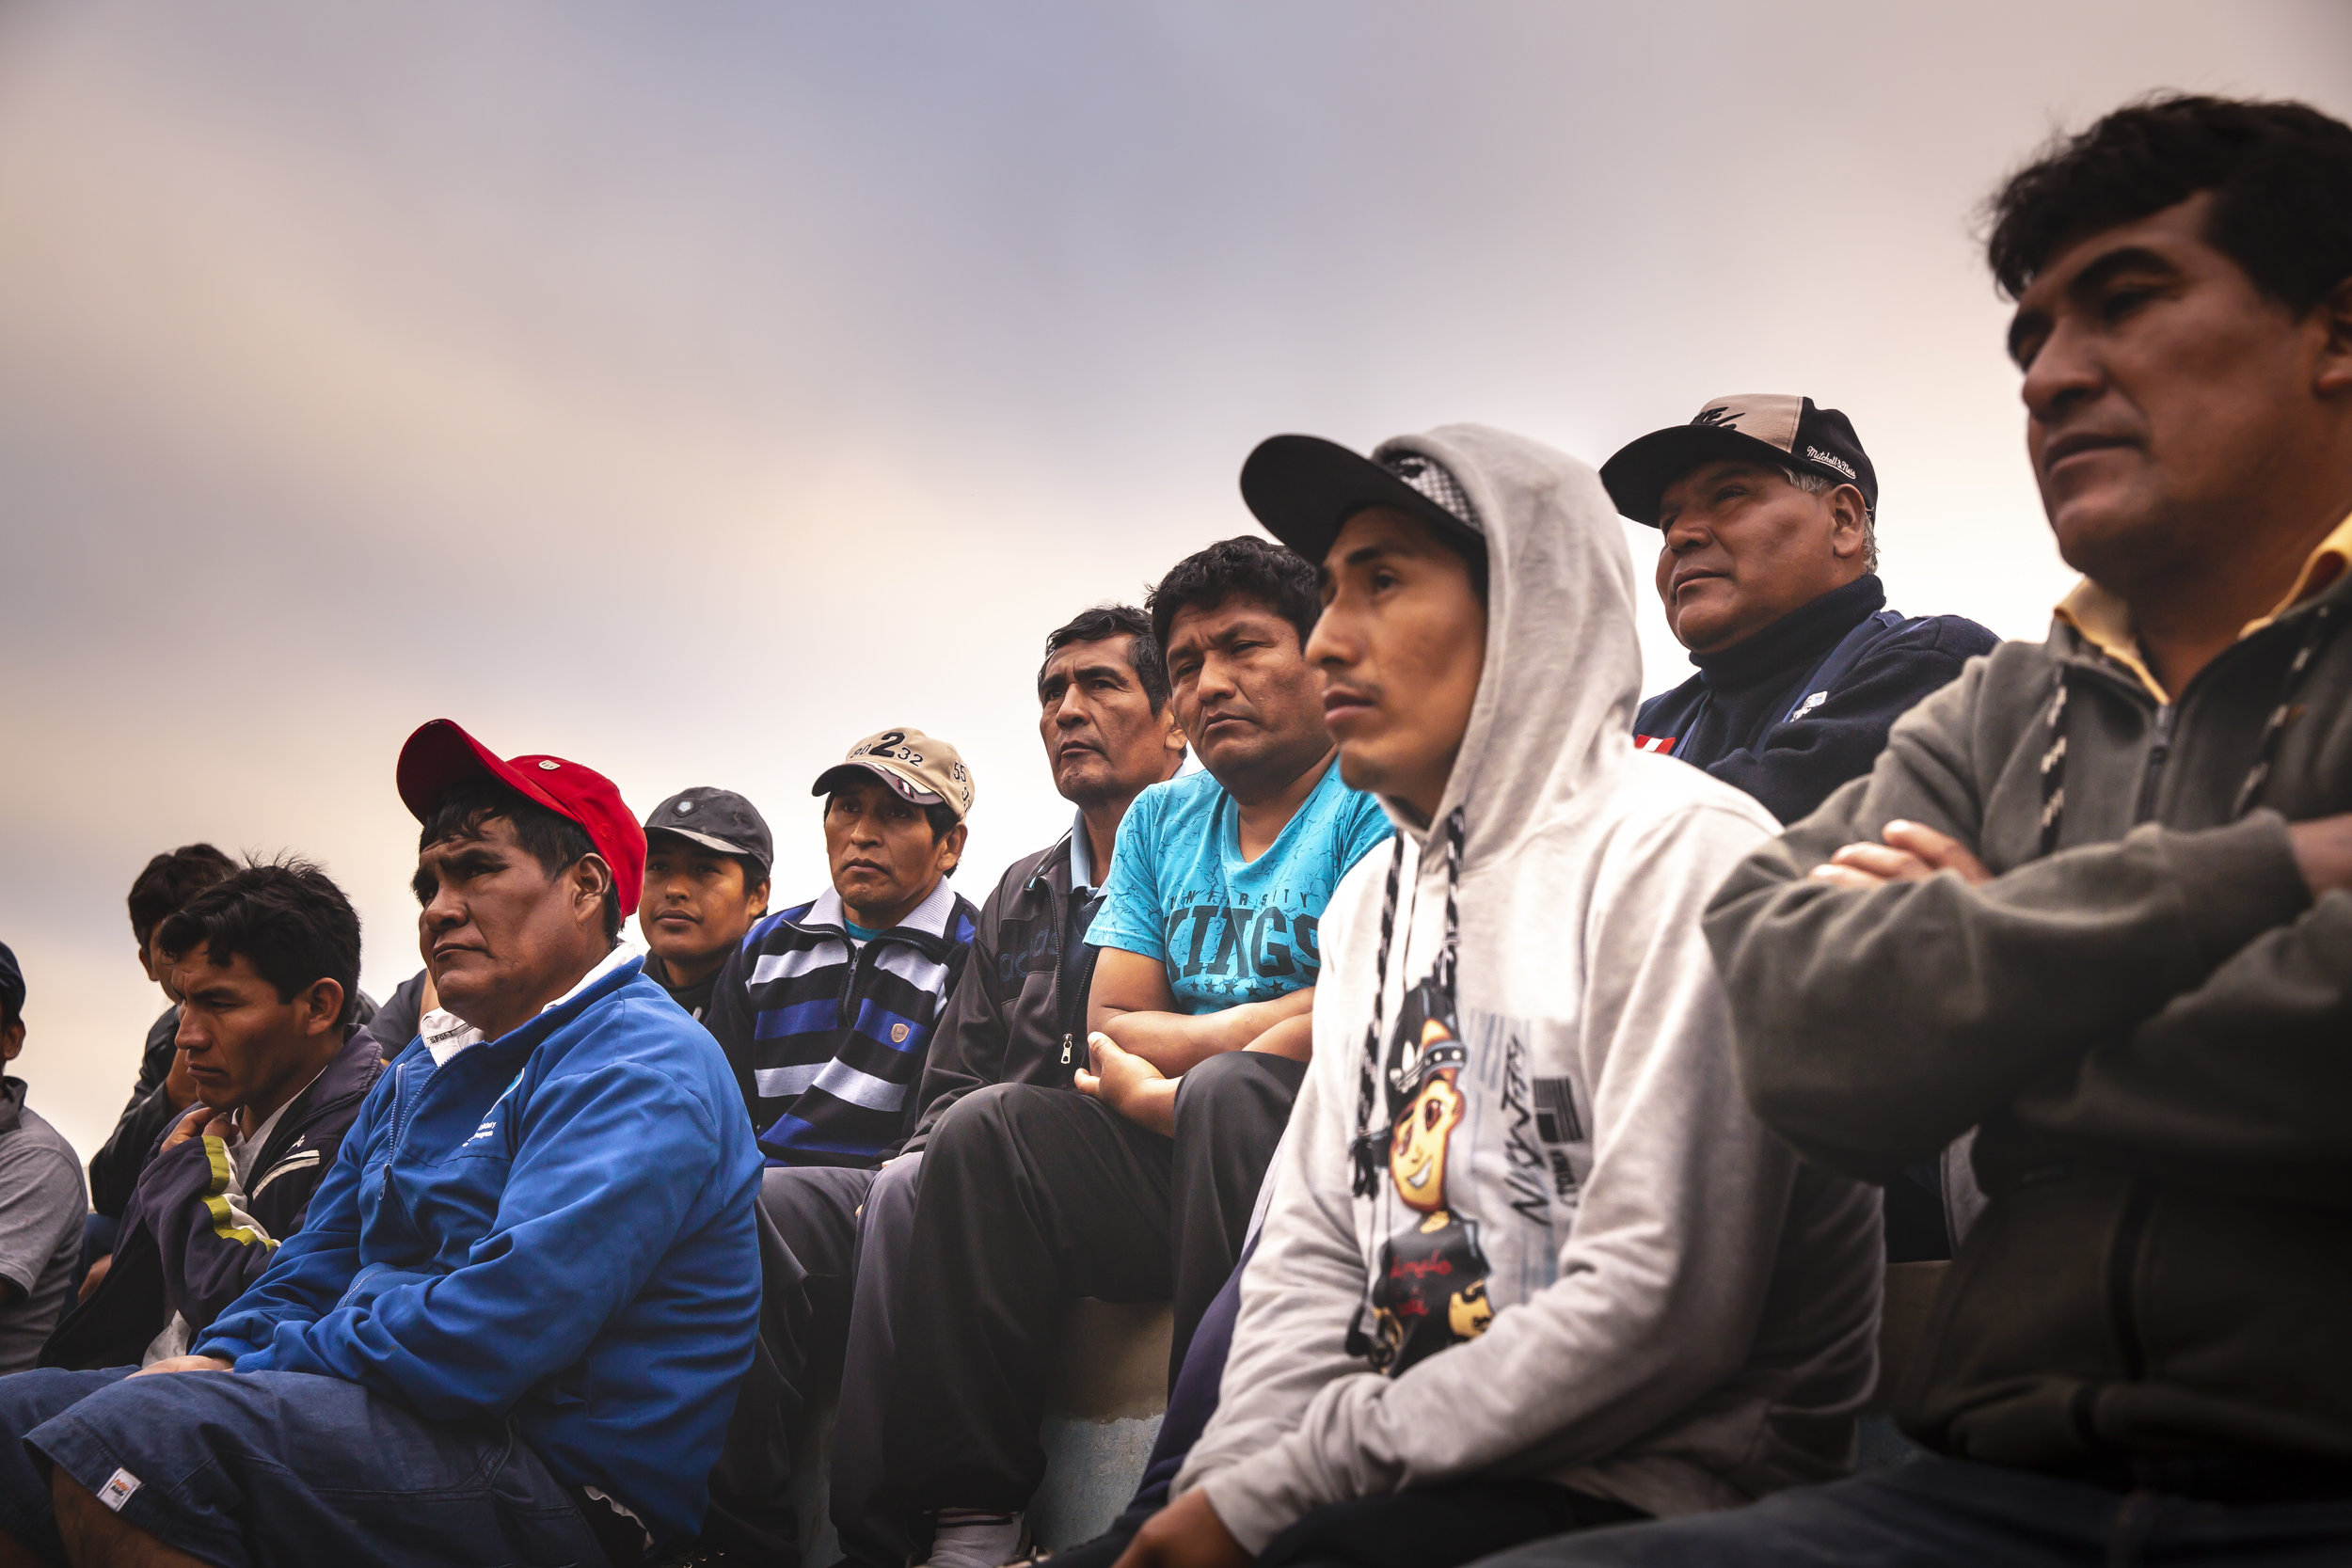 """As a loving parent would share with his children, Paco exclaims to the cooperative, """"If I'm concerned about our resources after 43 years of fishing, you should be twice as worried!""""   Ana Sotelo for NESsT"""